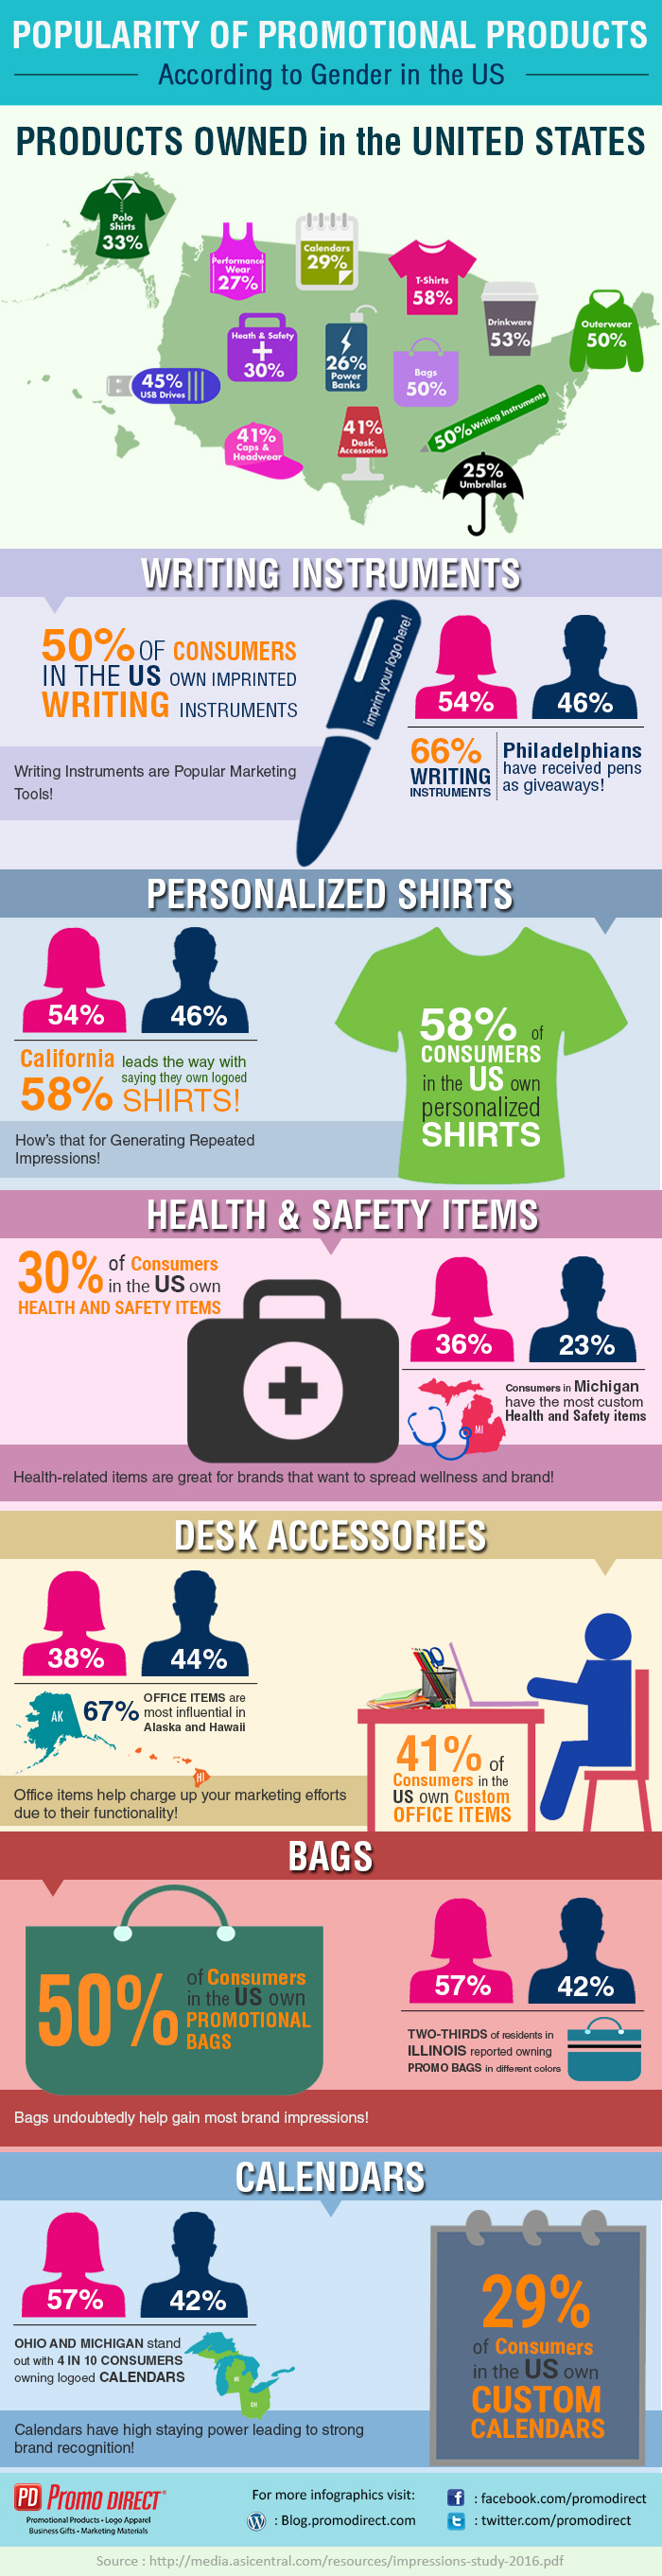 Popularity of promotional products according to gender